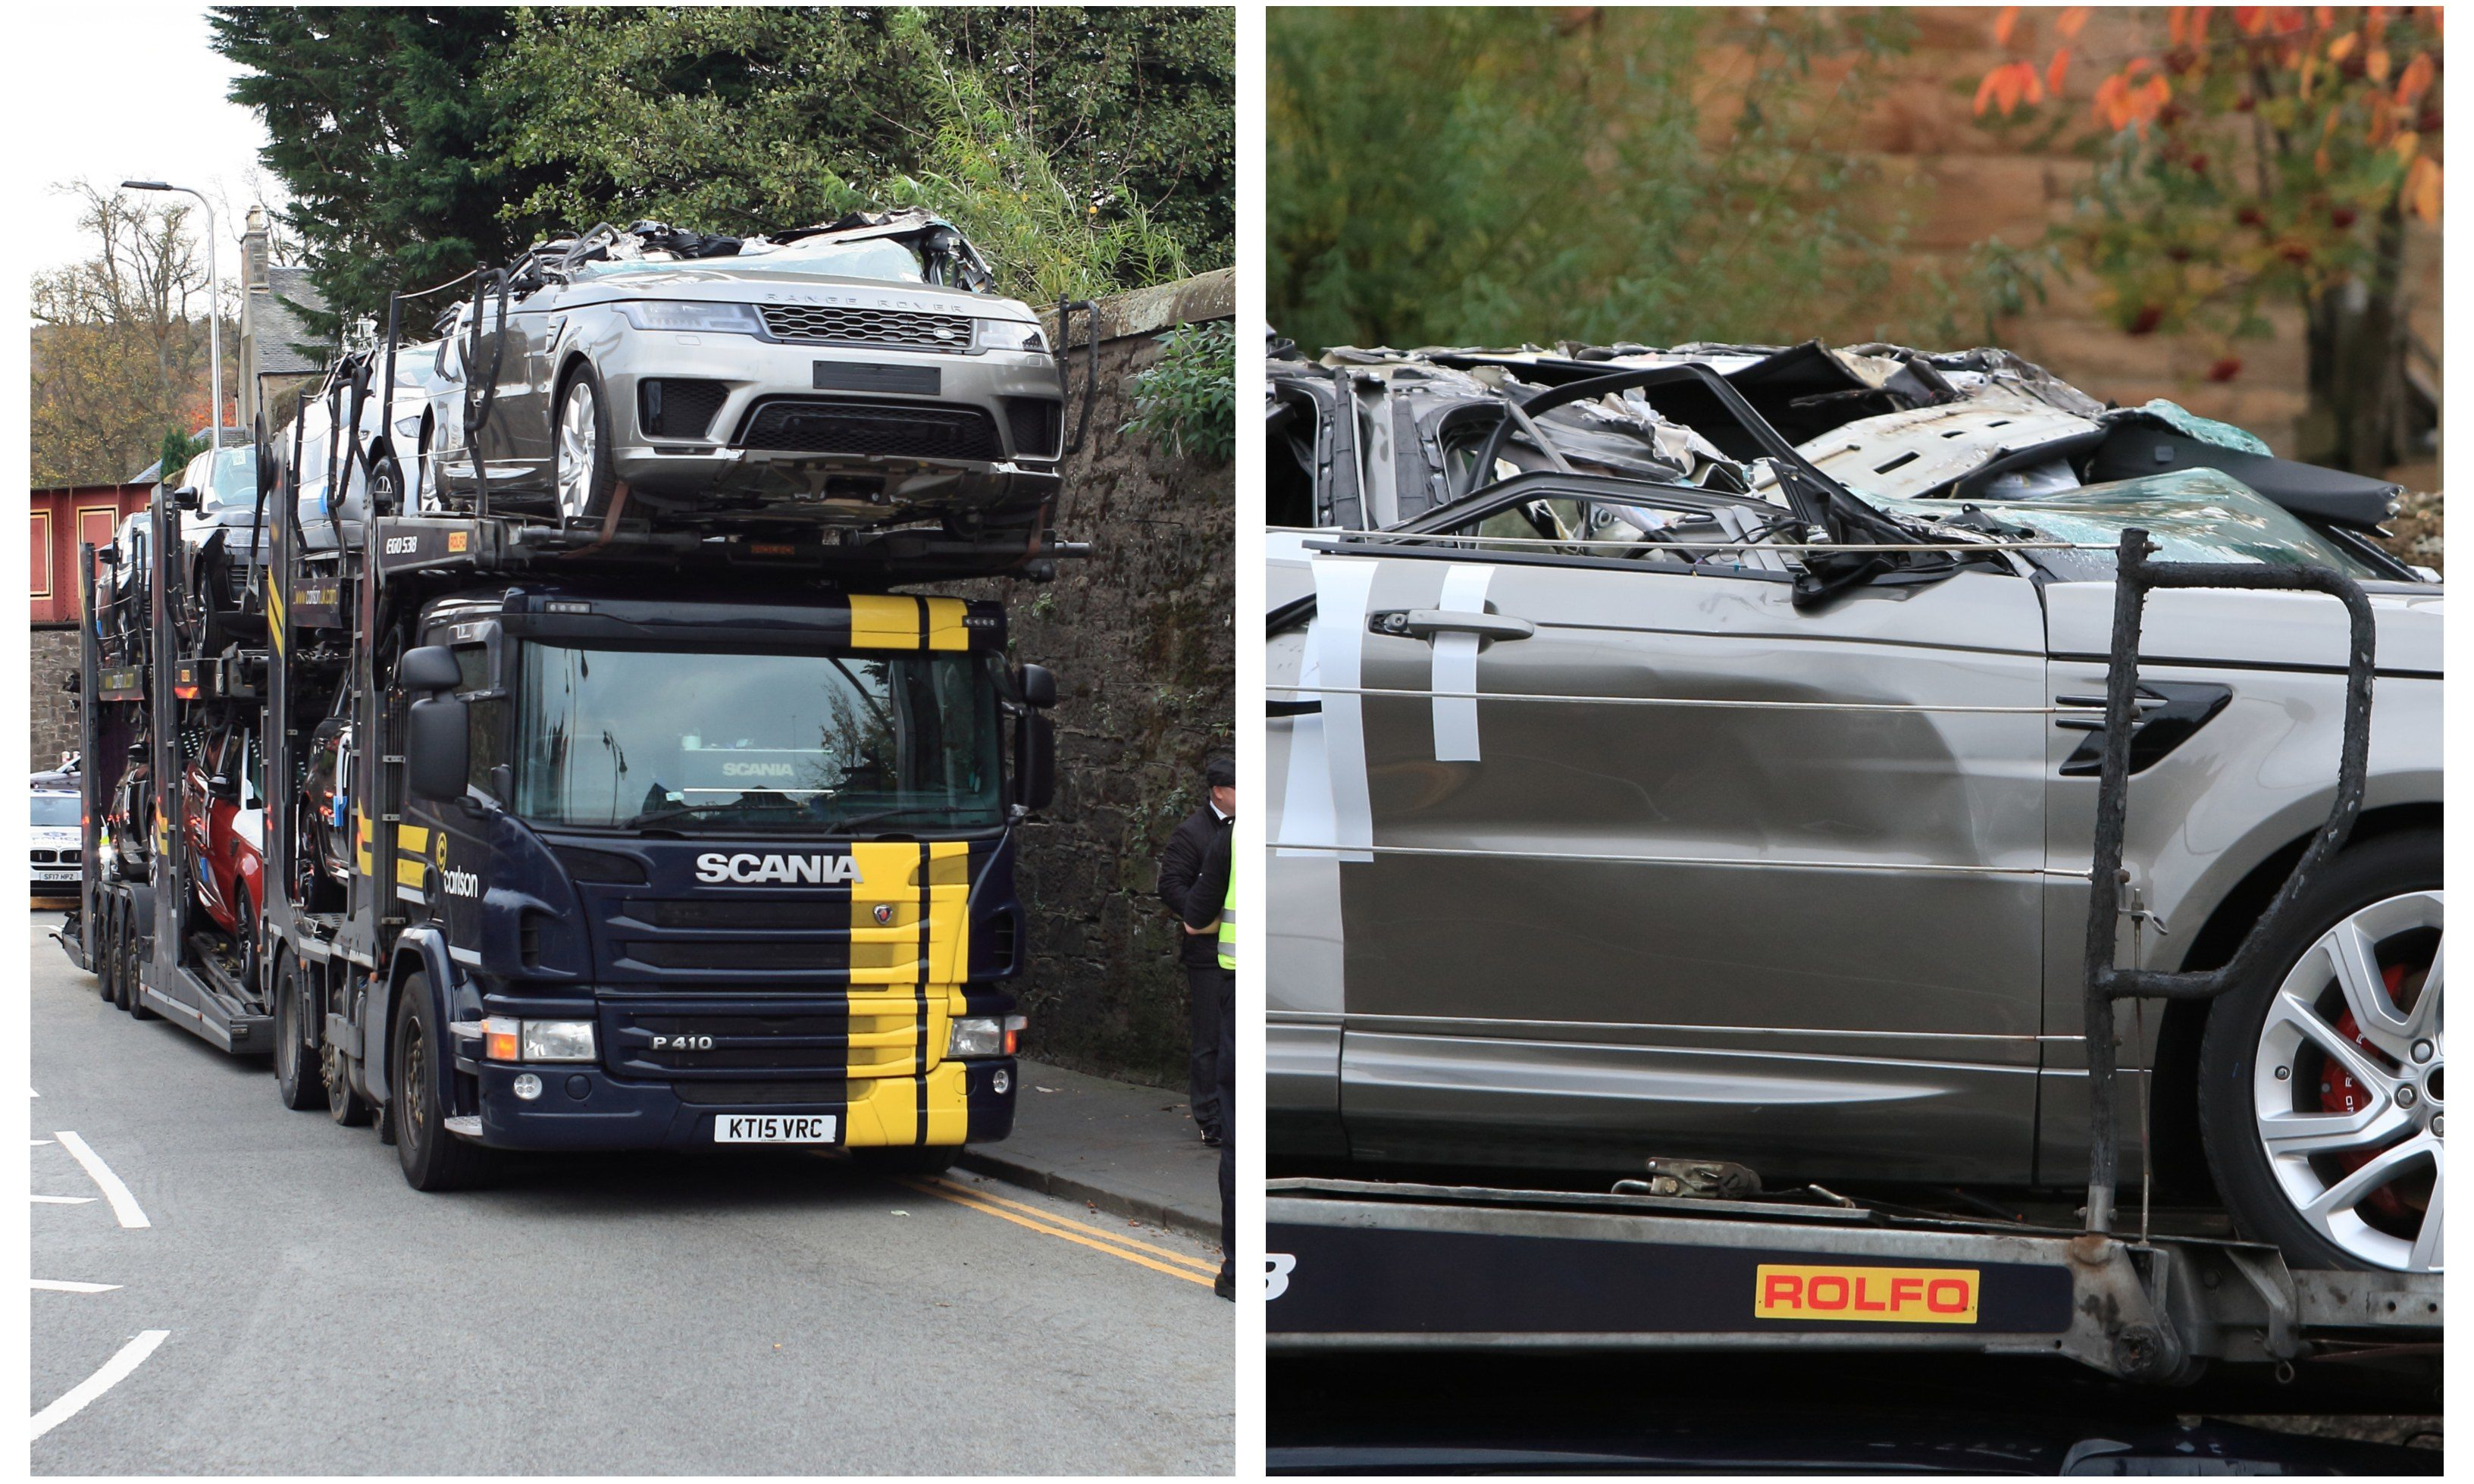 The car transporter after striking a railway bridge in Perth.